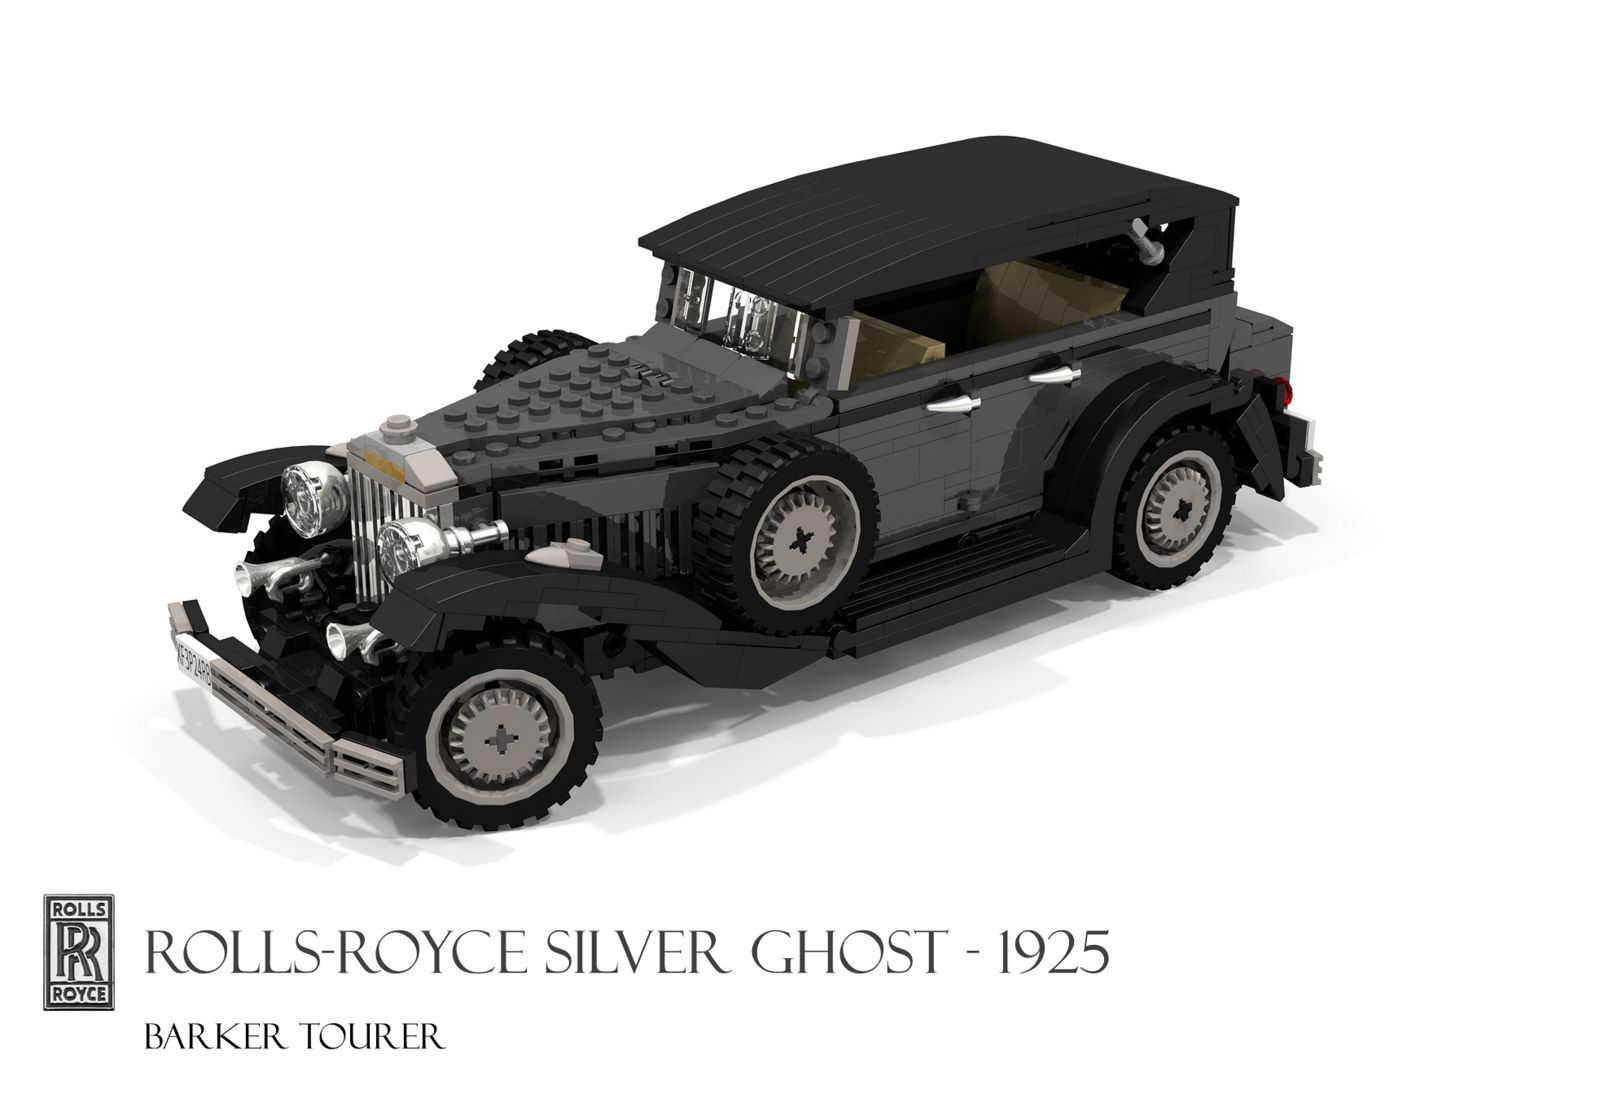 Rolls Royce 1925 Silver Ghost Barker Tourer Lledo Vintage Collection Rolls Royce Lego Cars Miniature Cars